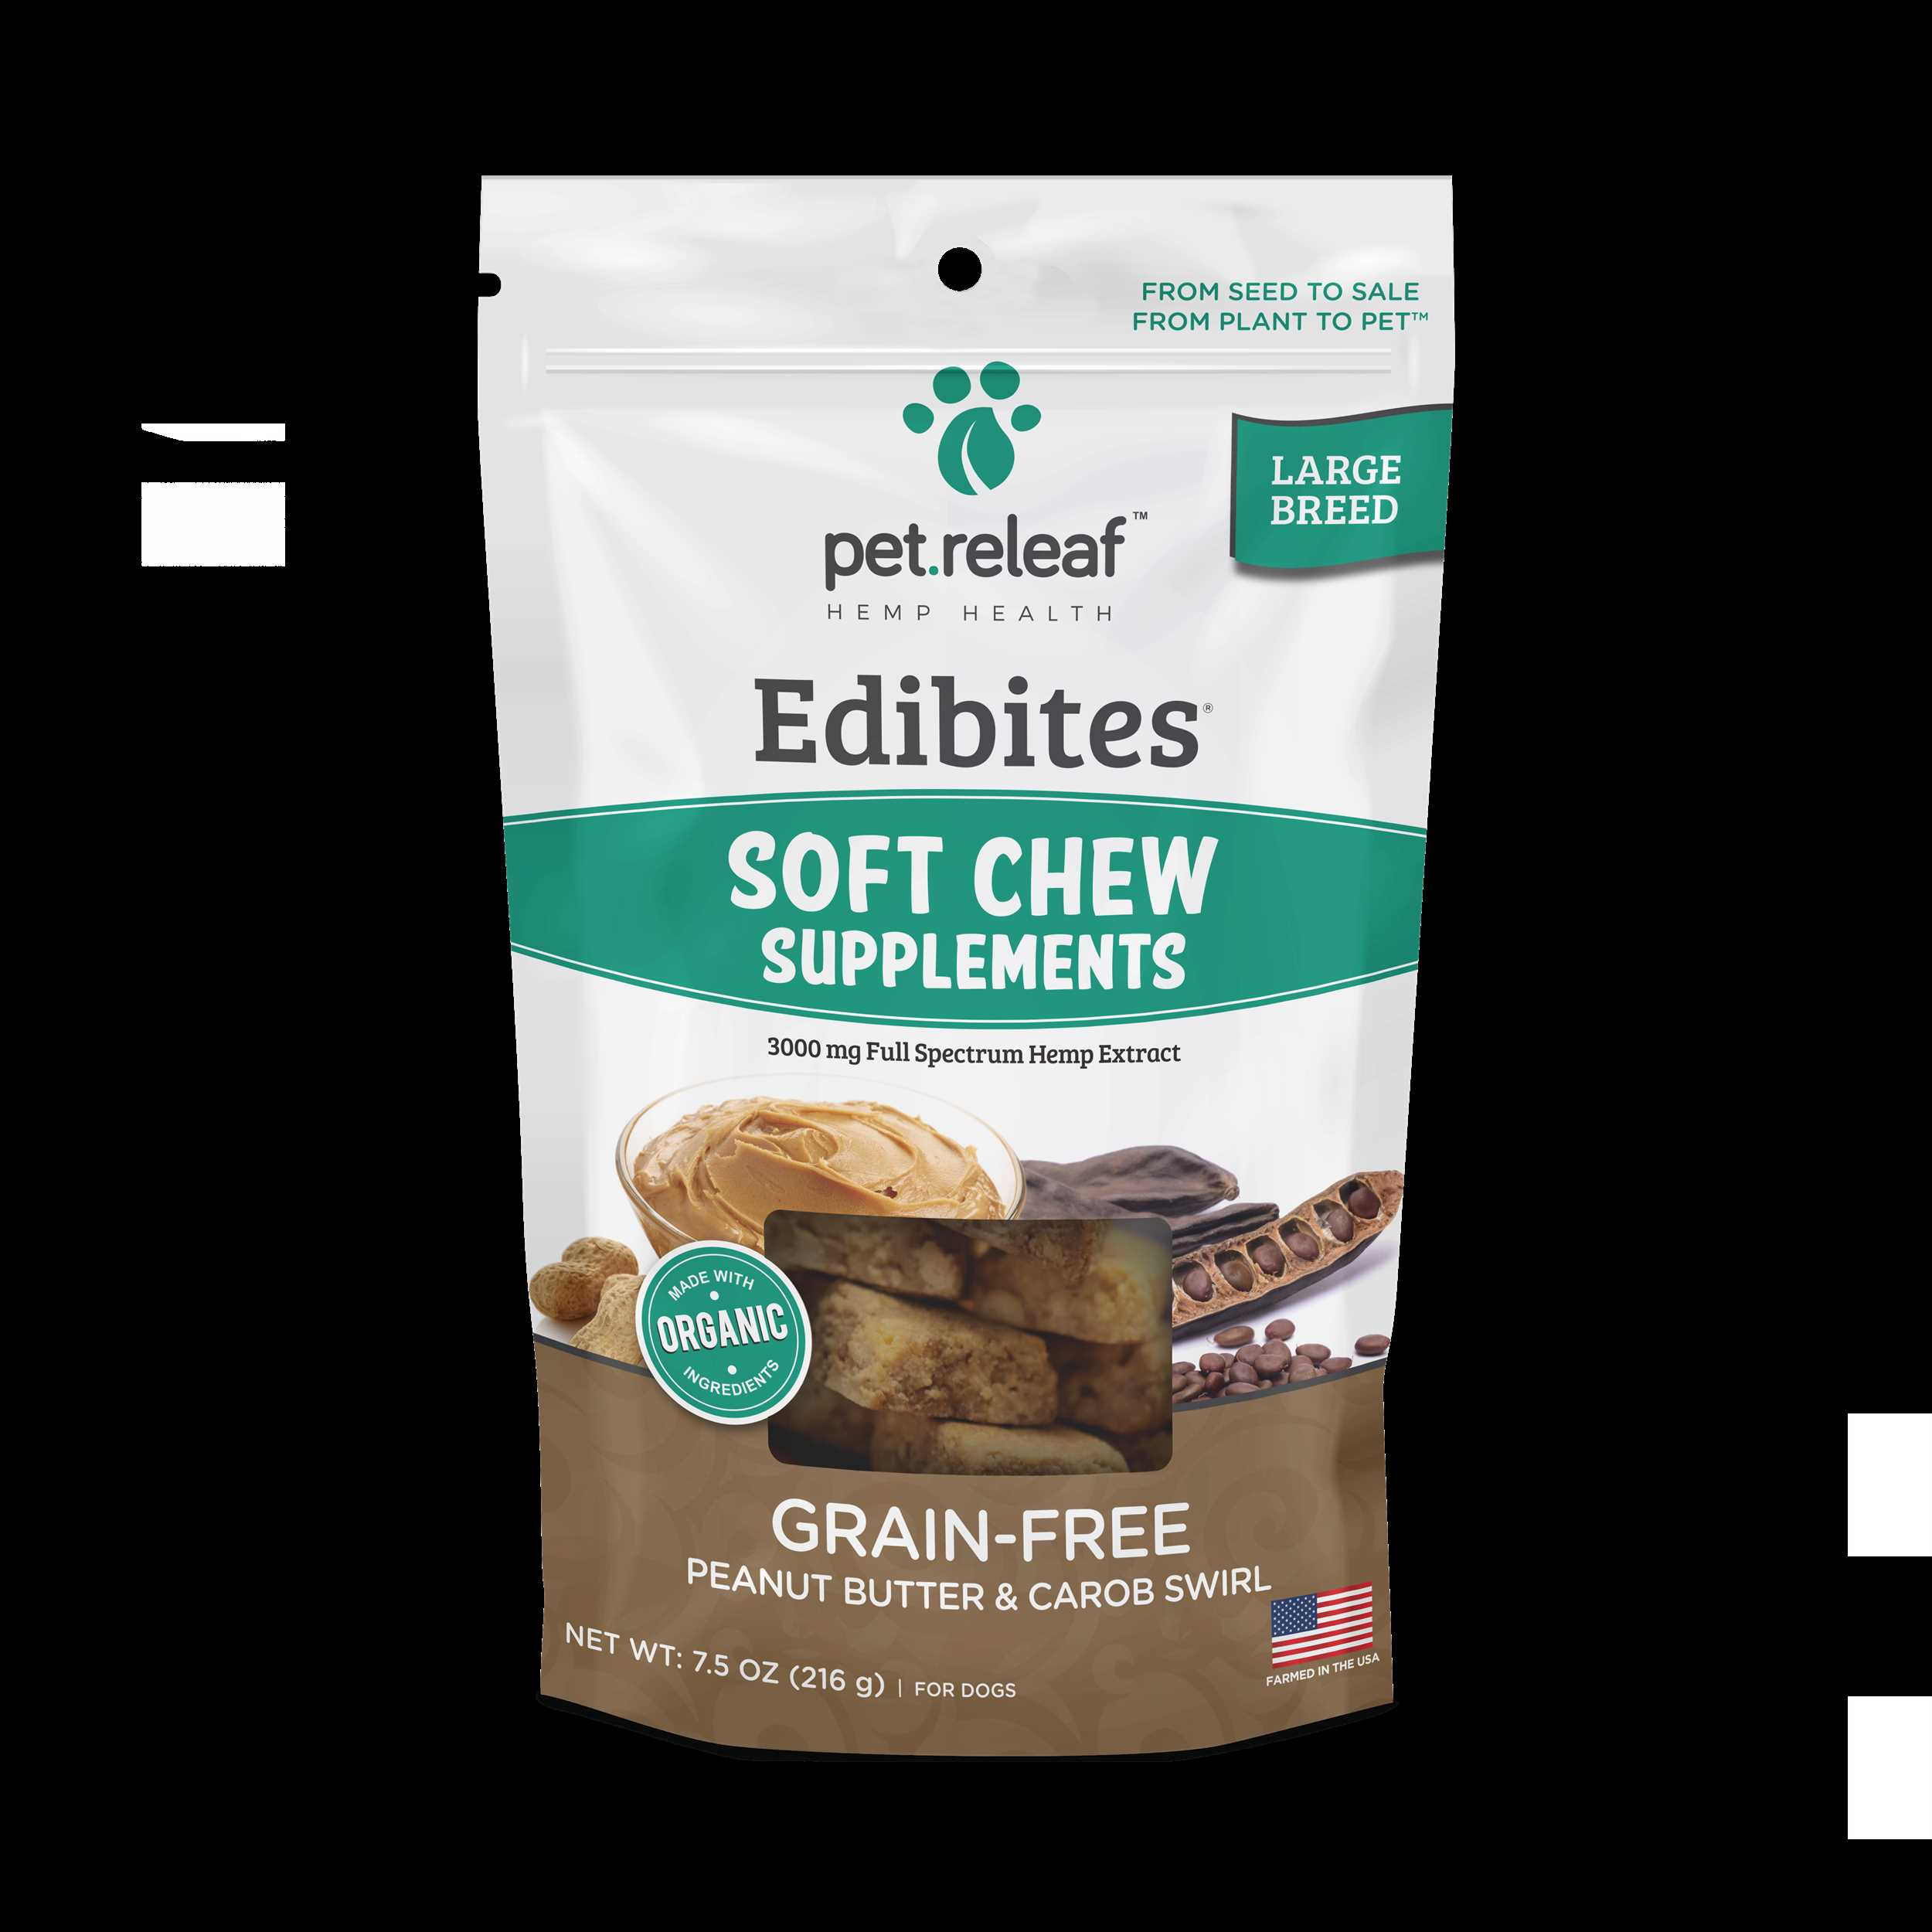 PB Carob Swirl 3000mg CBD LG Breed Soft Chews $30